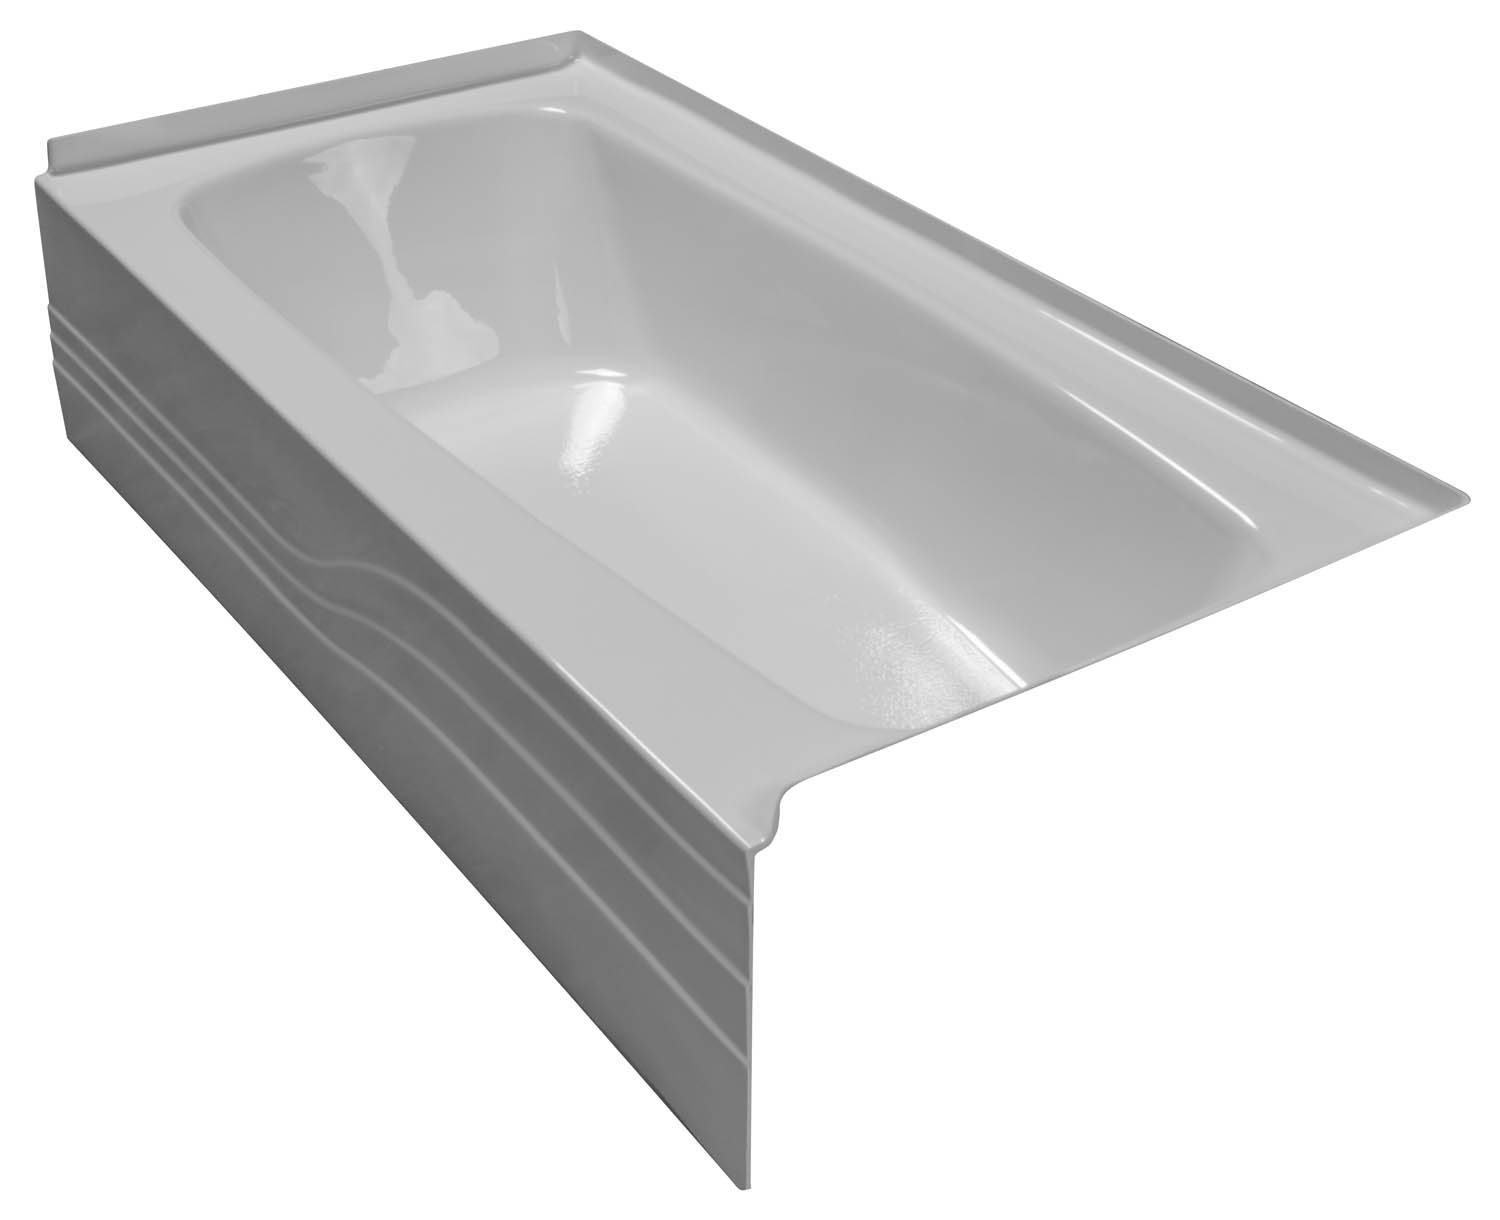 30x60 Skirted Bathtub BR-26 Right Hand - BathTubs.com